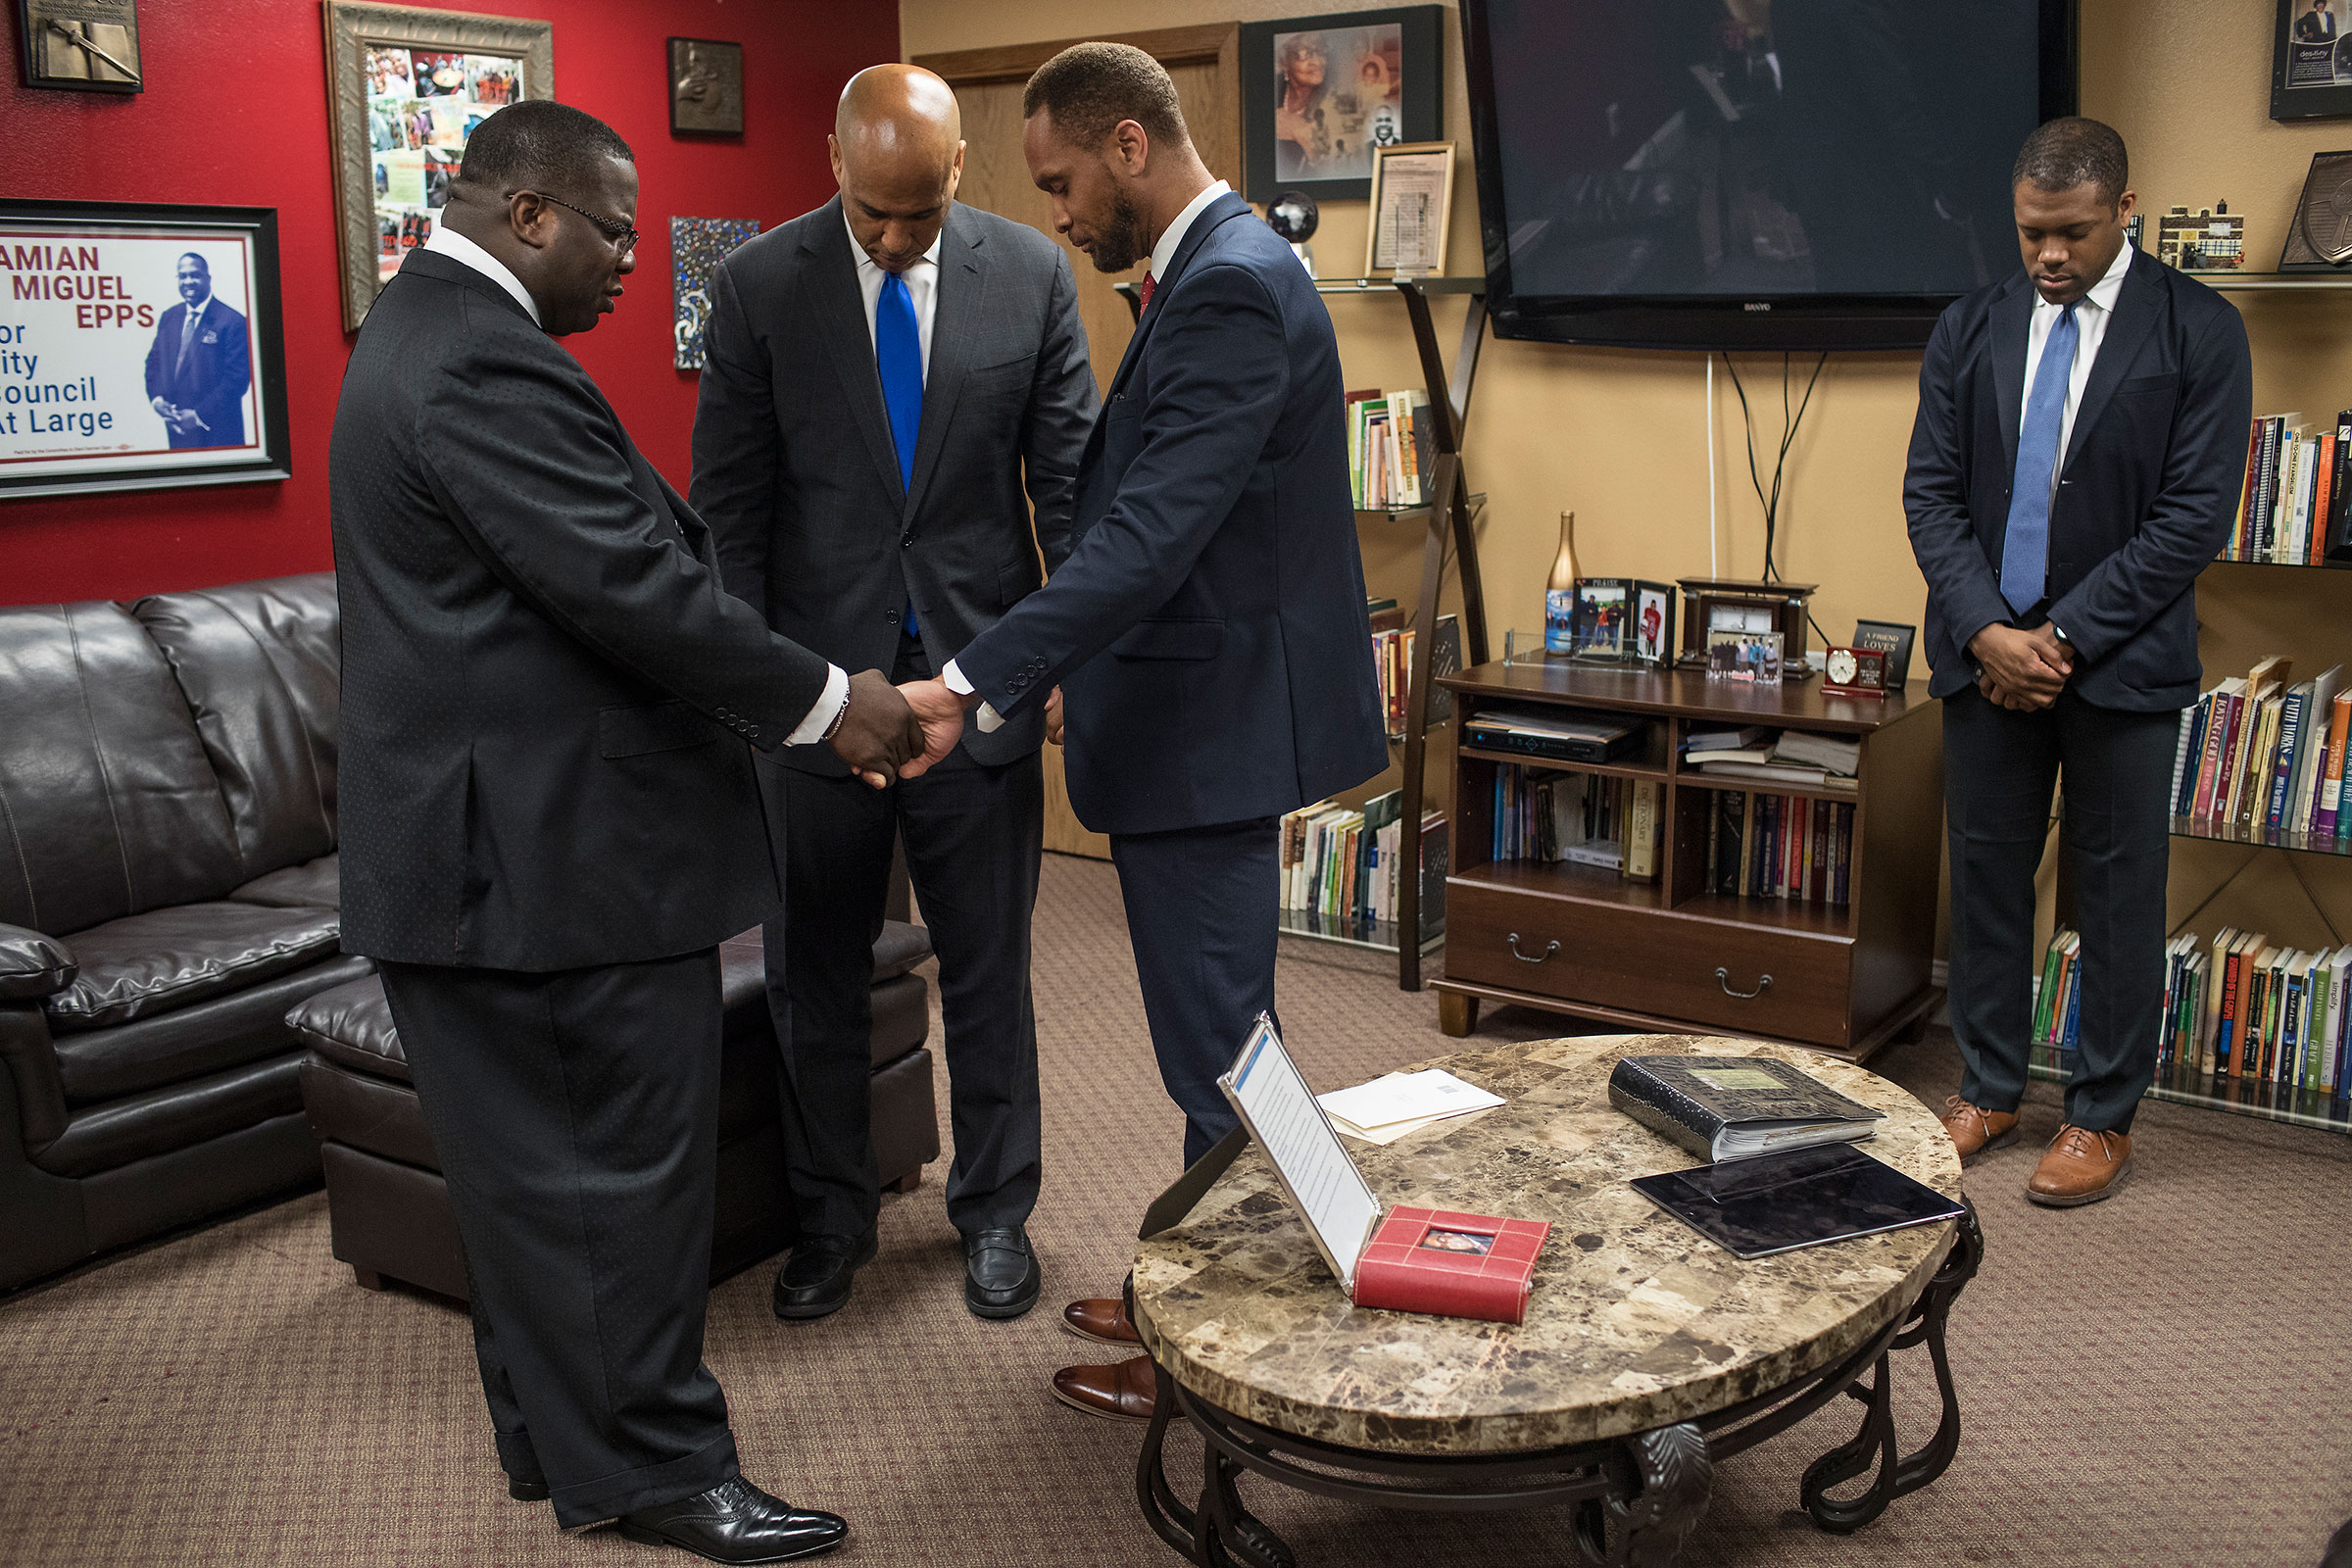 Pastor Dr. Damian Miguel Epps, Senator Cory Booker, and Linn County Supervisor Stacey Walker pray before the Youth Empowerment Day service at Mt. Zion Missionary Baptist Church in Cedar Rapids, Iowa on June 9.